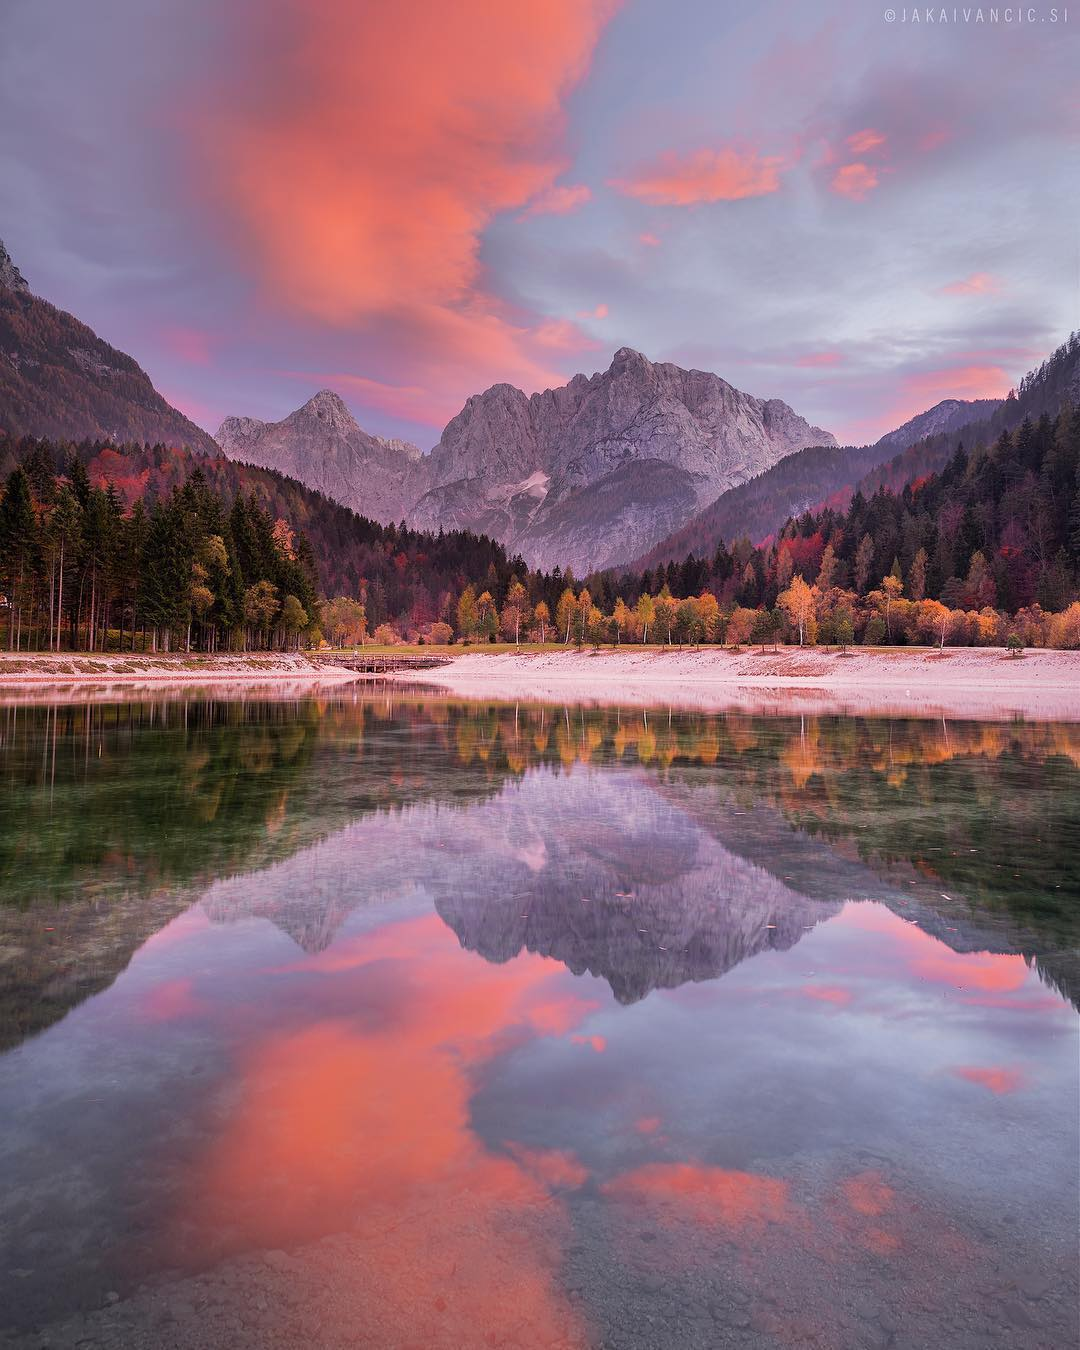 LAKE JASNA   Look at these majestic colours, pure nature.  Reflections of mountains in the crystal clear lake water.  Before the first road bends to Vršič, stop for a short break at the Jasna Lake. It consists of two interconnected artificial lakes at the confluence of the Velika Pišnica and Mala Pišnica streams. Thanks @jaka_ivancic for sharing your photo with #ifeelsLOVEnia.